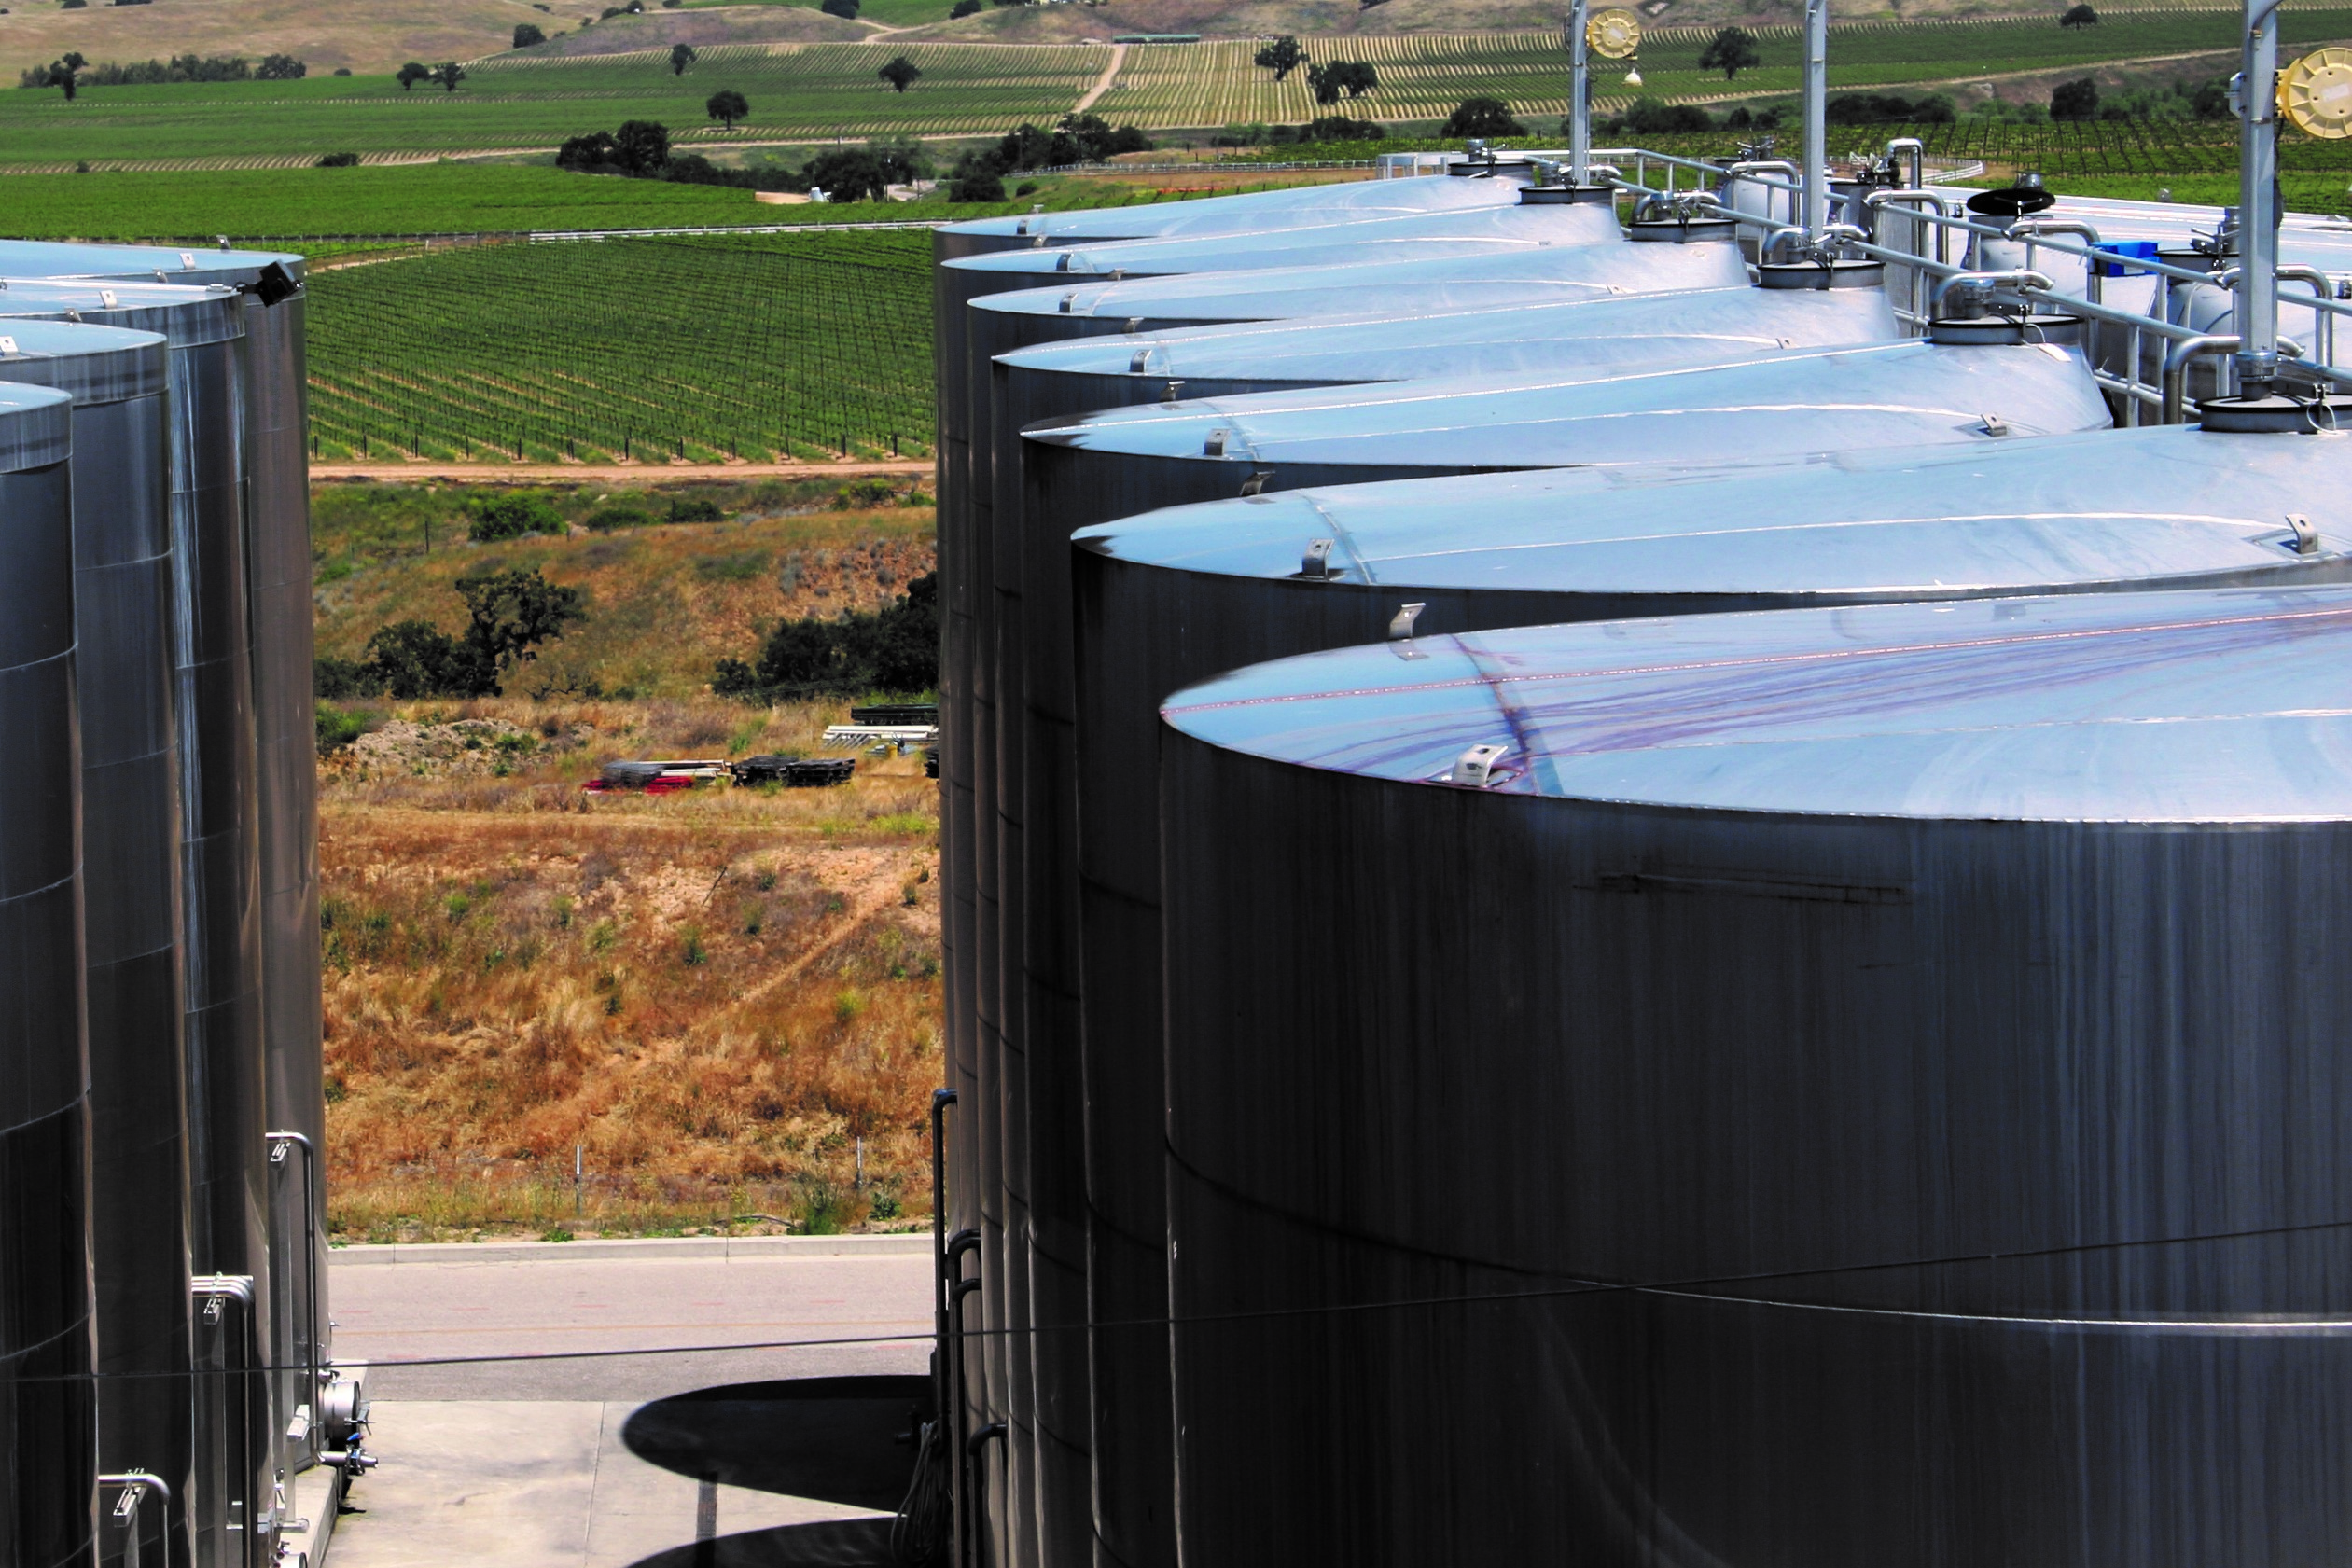 Photo of wine tanks with vineyards in background by Phil Bourke